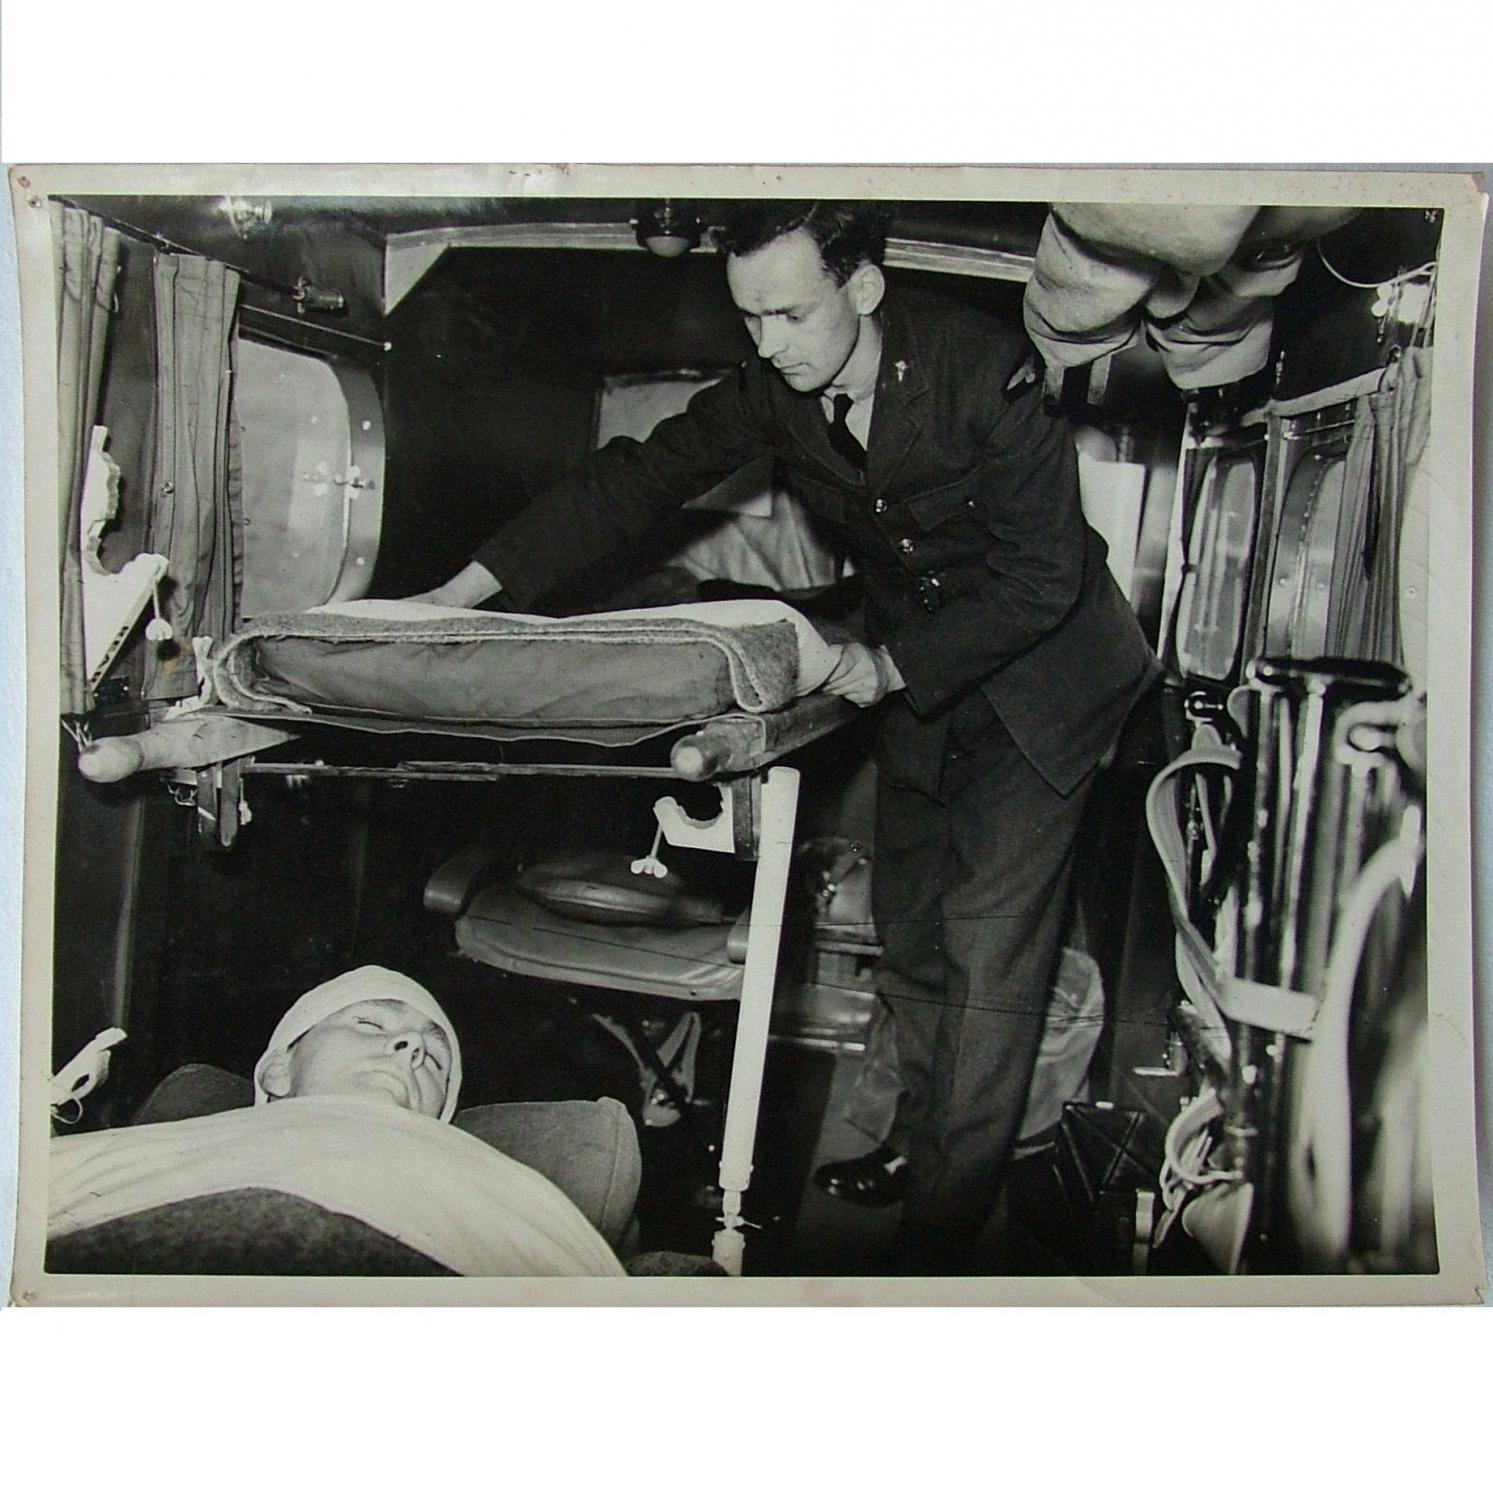 RAF Press Photo - Air Ambulance